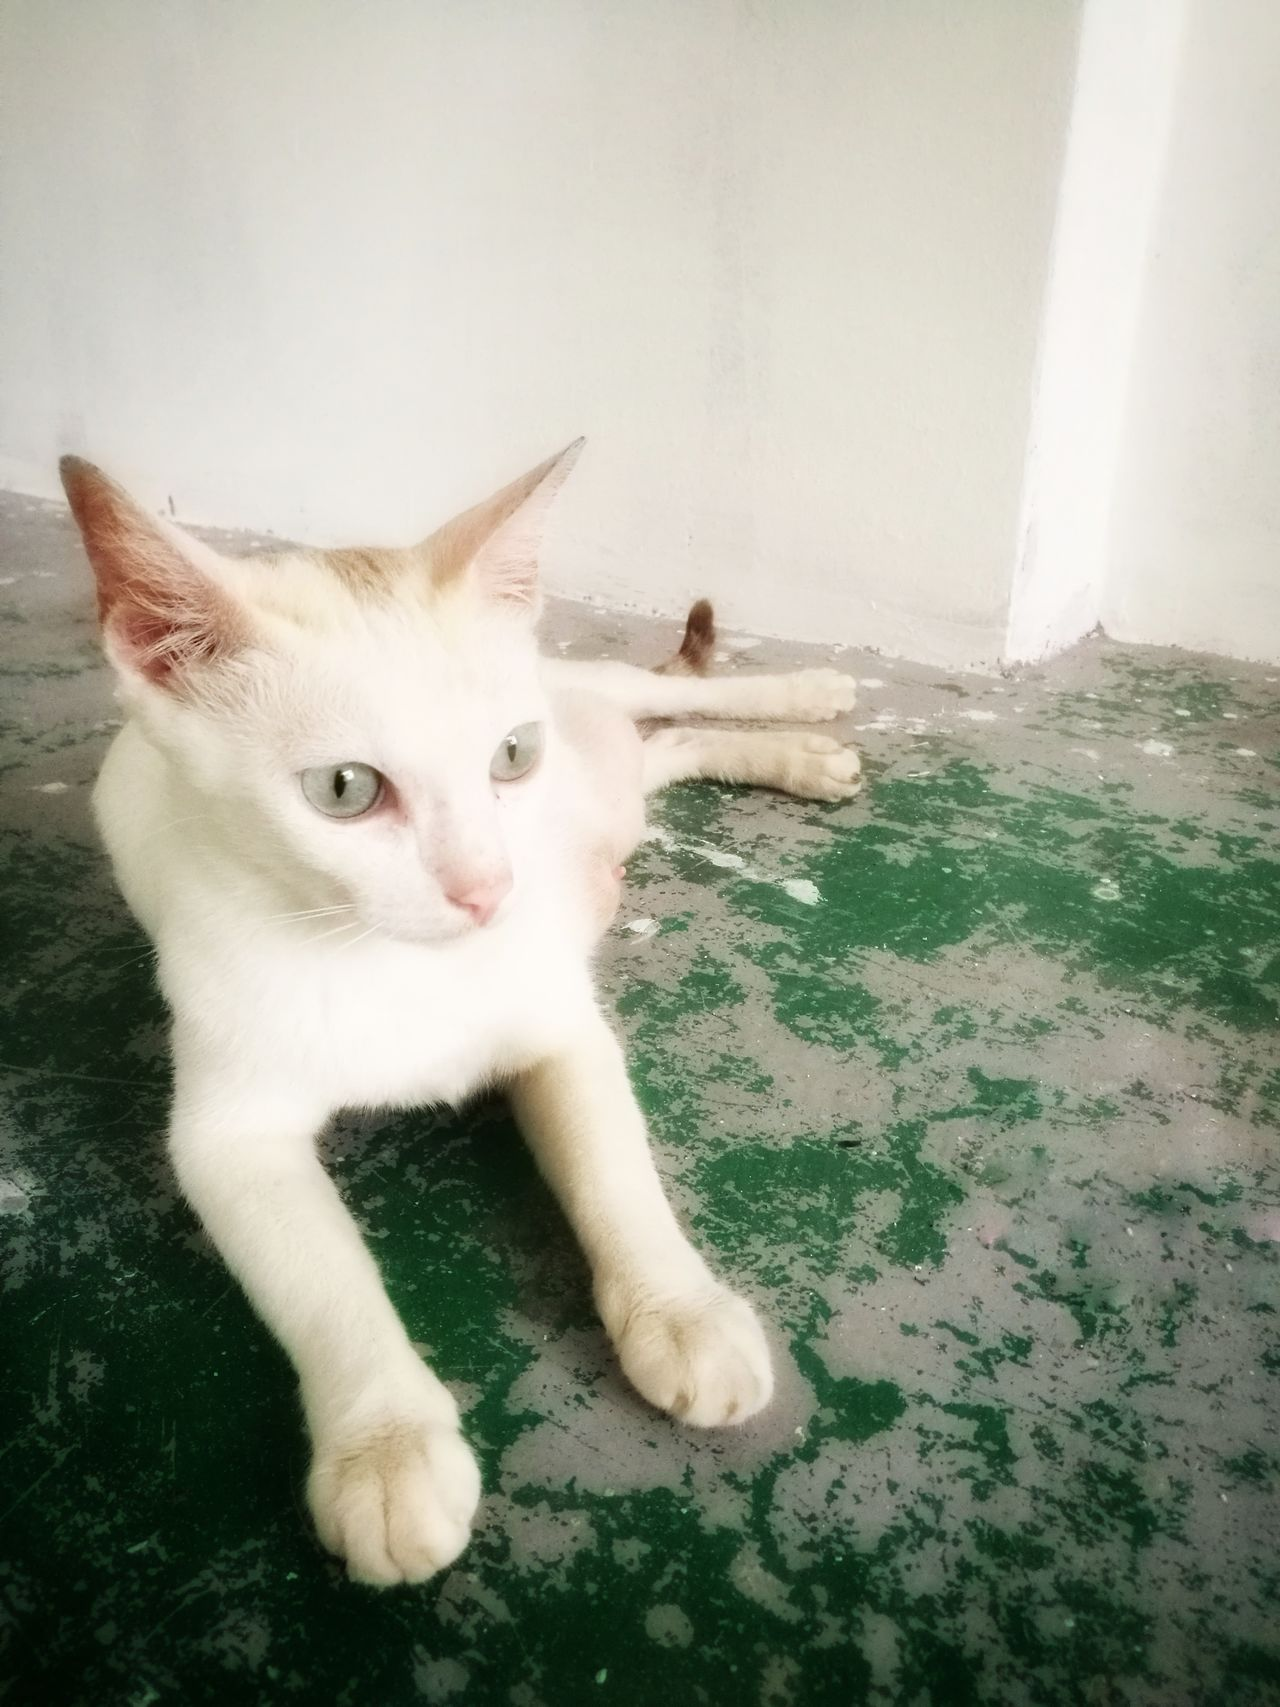 Domestic Cat One Animal Pets Domestic Animals Animal Themes Indoors  Mammal Cat HuaweiP9 Huawei P9 Plus Homeless Cats Homeless Animal Huaweiphotography Homeless Animal Green Color Hua Wei P9 Plus Homelessness  Homeless Cat